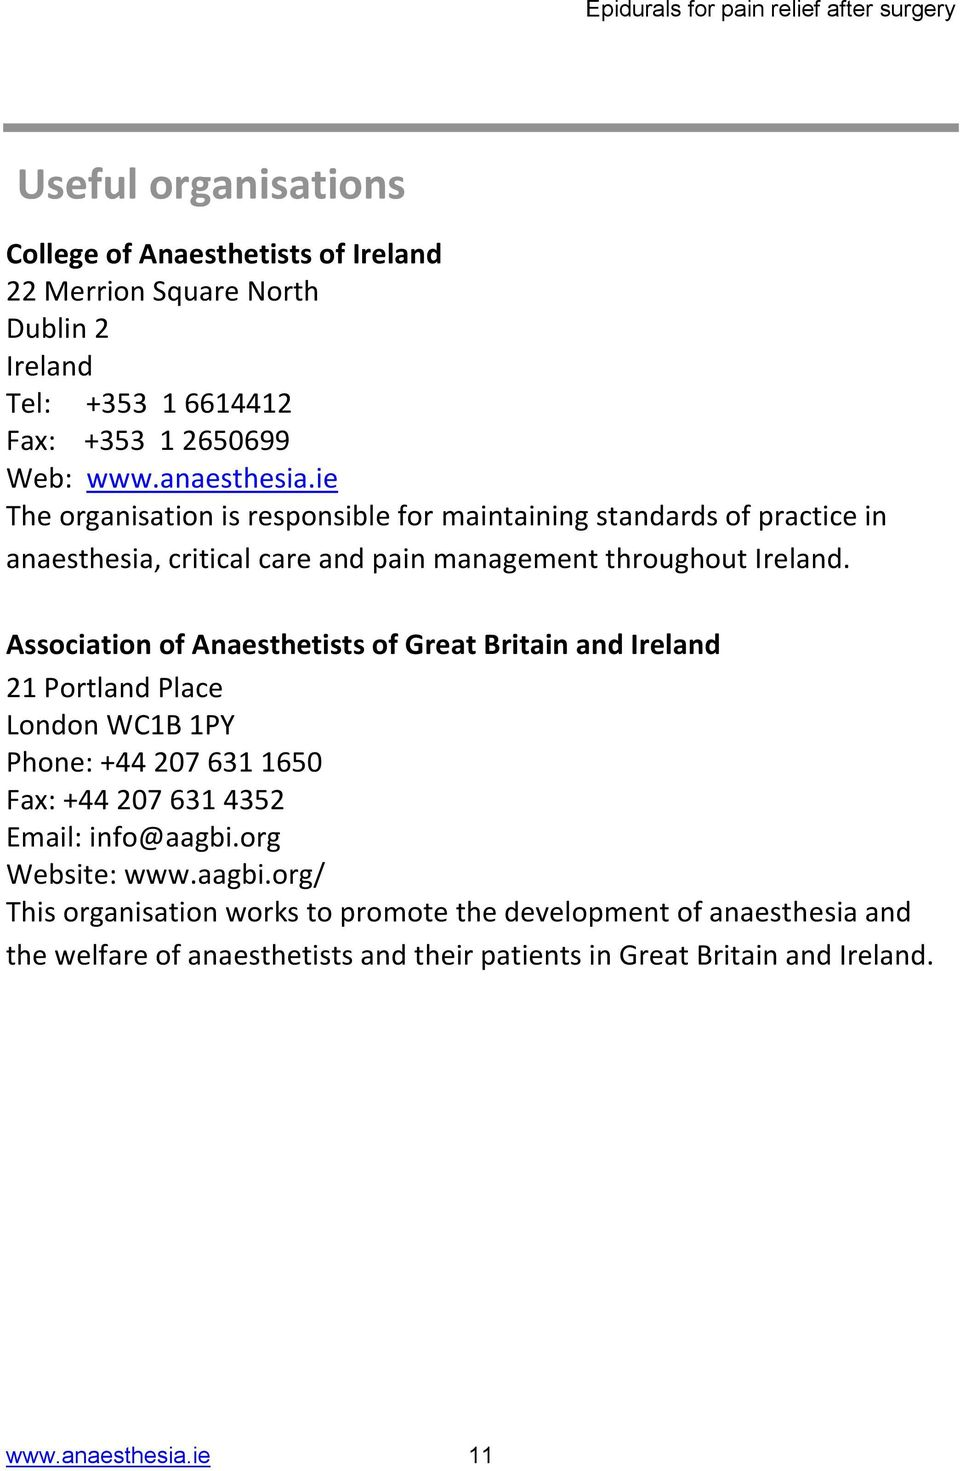 Association of Anaesthetists of Great Britain and Ireland 21 Portland Place London WC1B 1PY Phone: +44 207 631 1650 Fax: +44 207 631 4352 Email: info@aagbi.